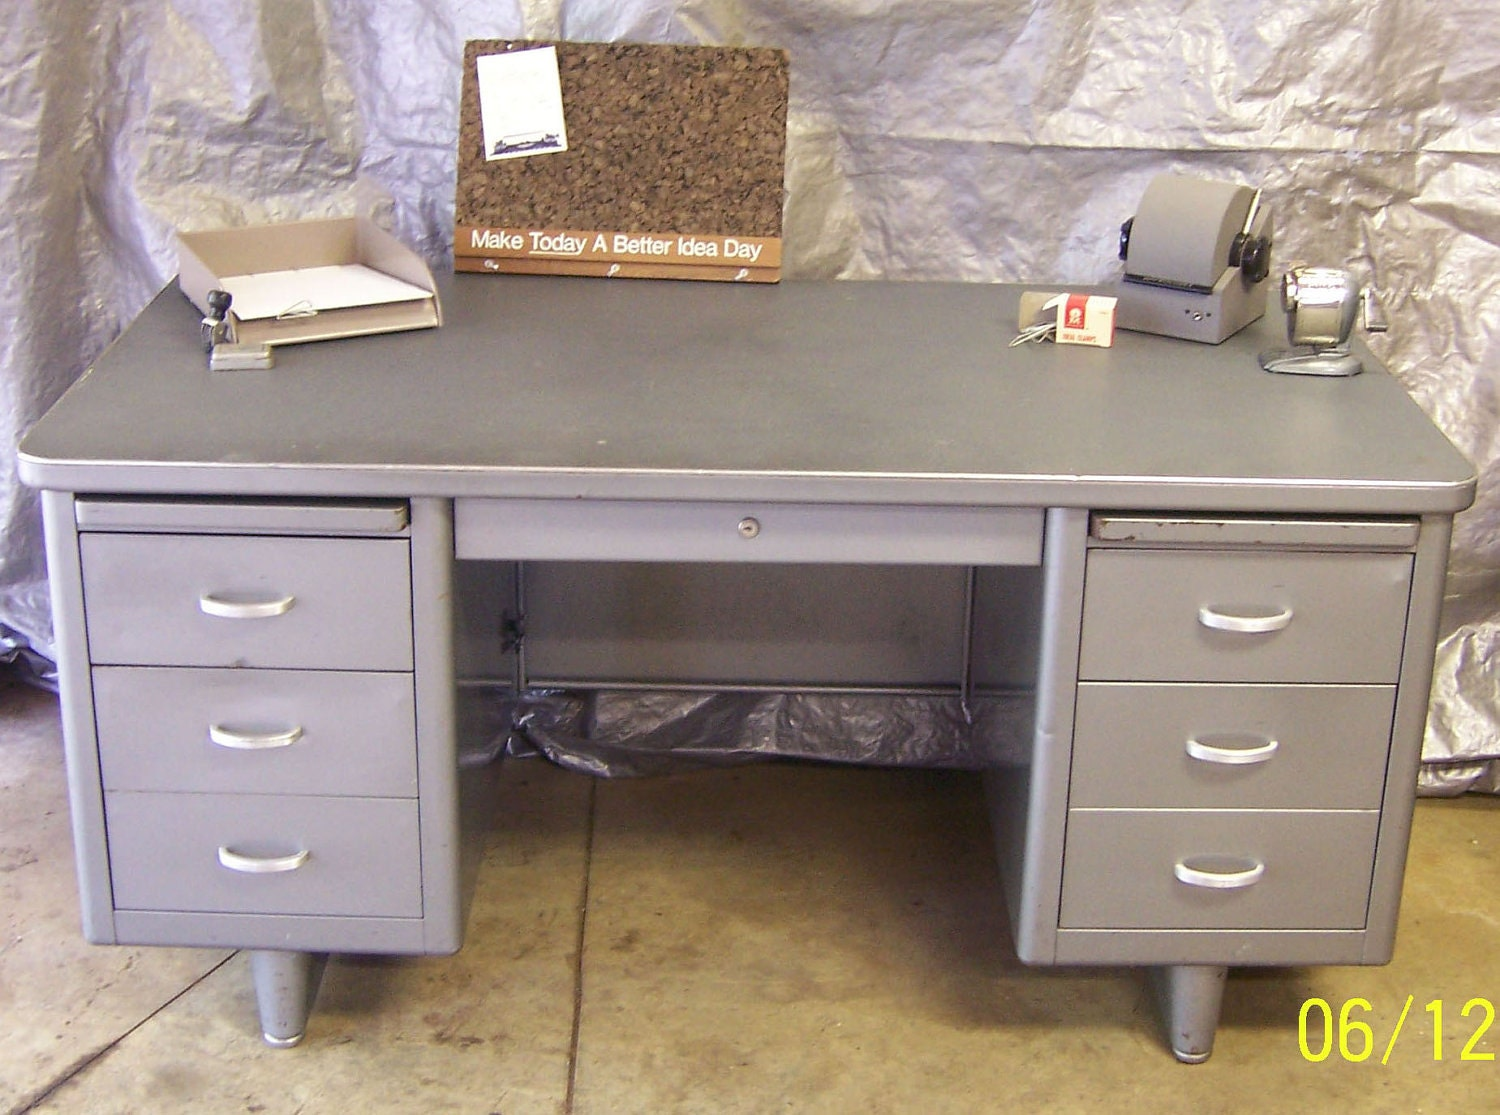 Uncategorized Vintage Steel Tanker Desk industrial metal desks archive page 2 the garage journal board